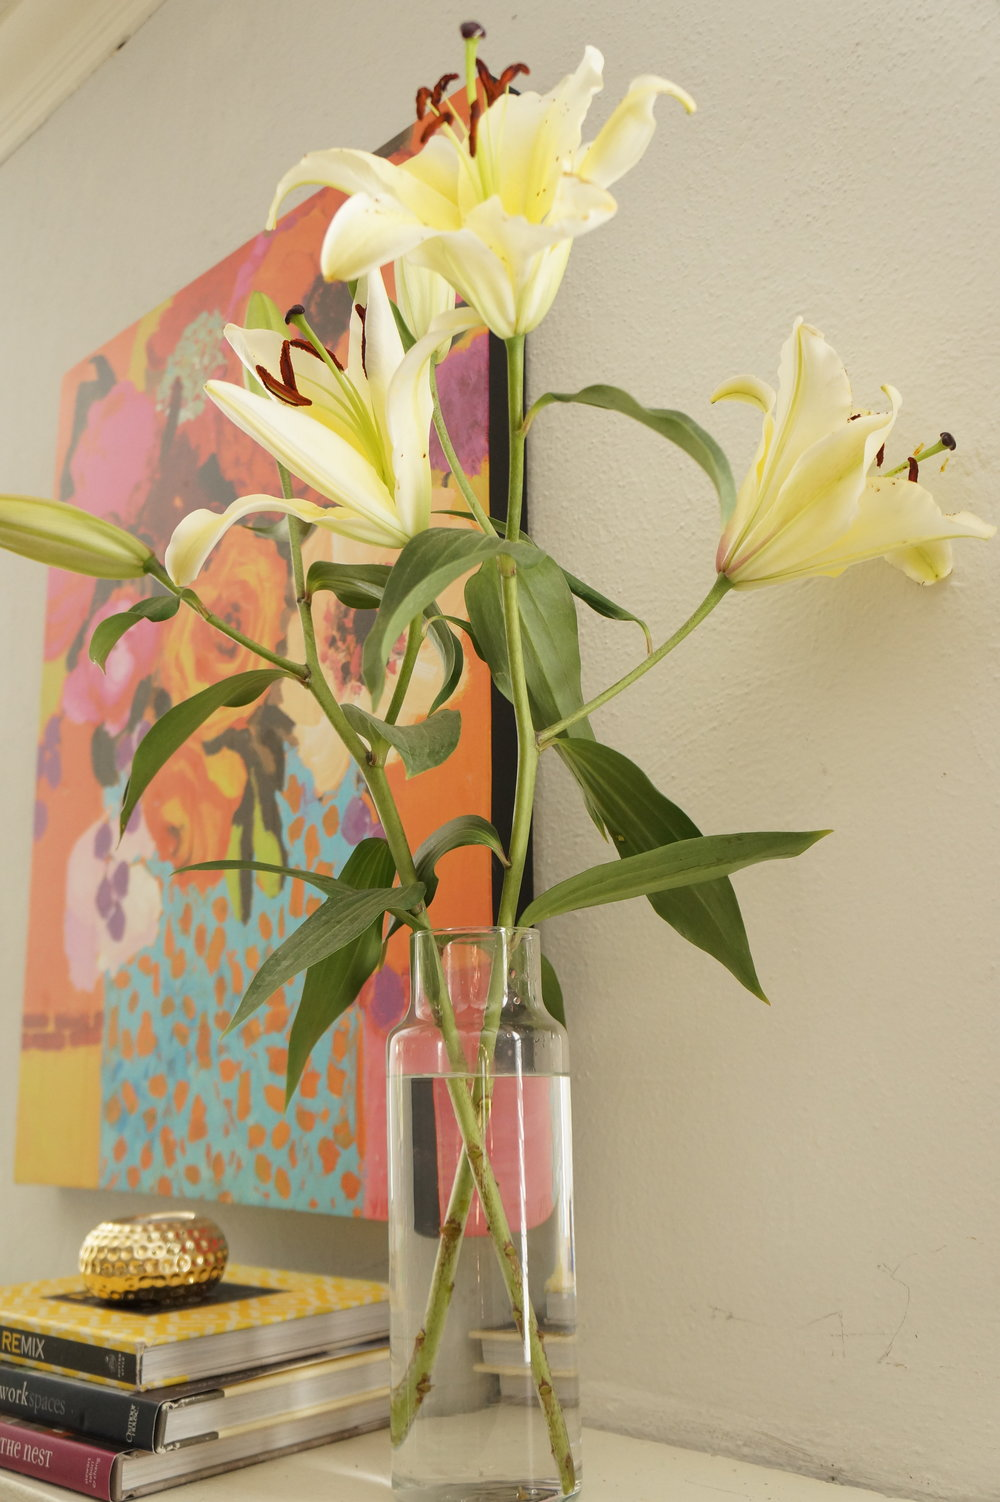 Andrea Fenise Memphis Fashion Blogger shares how to decorate your home with simple floral arrangements